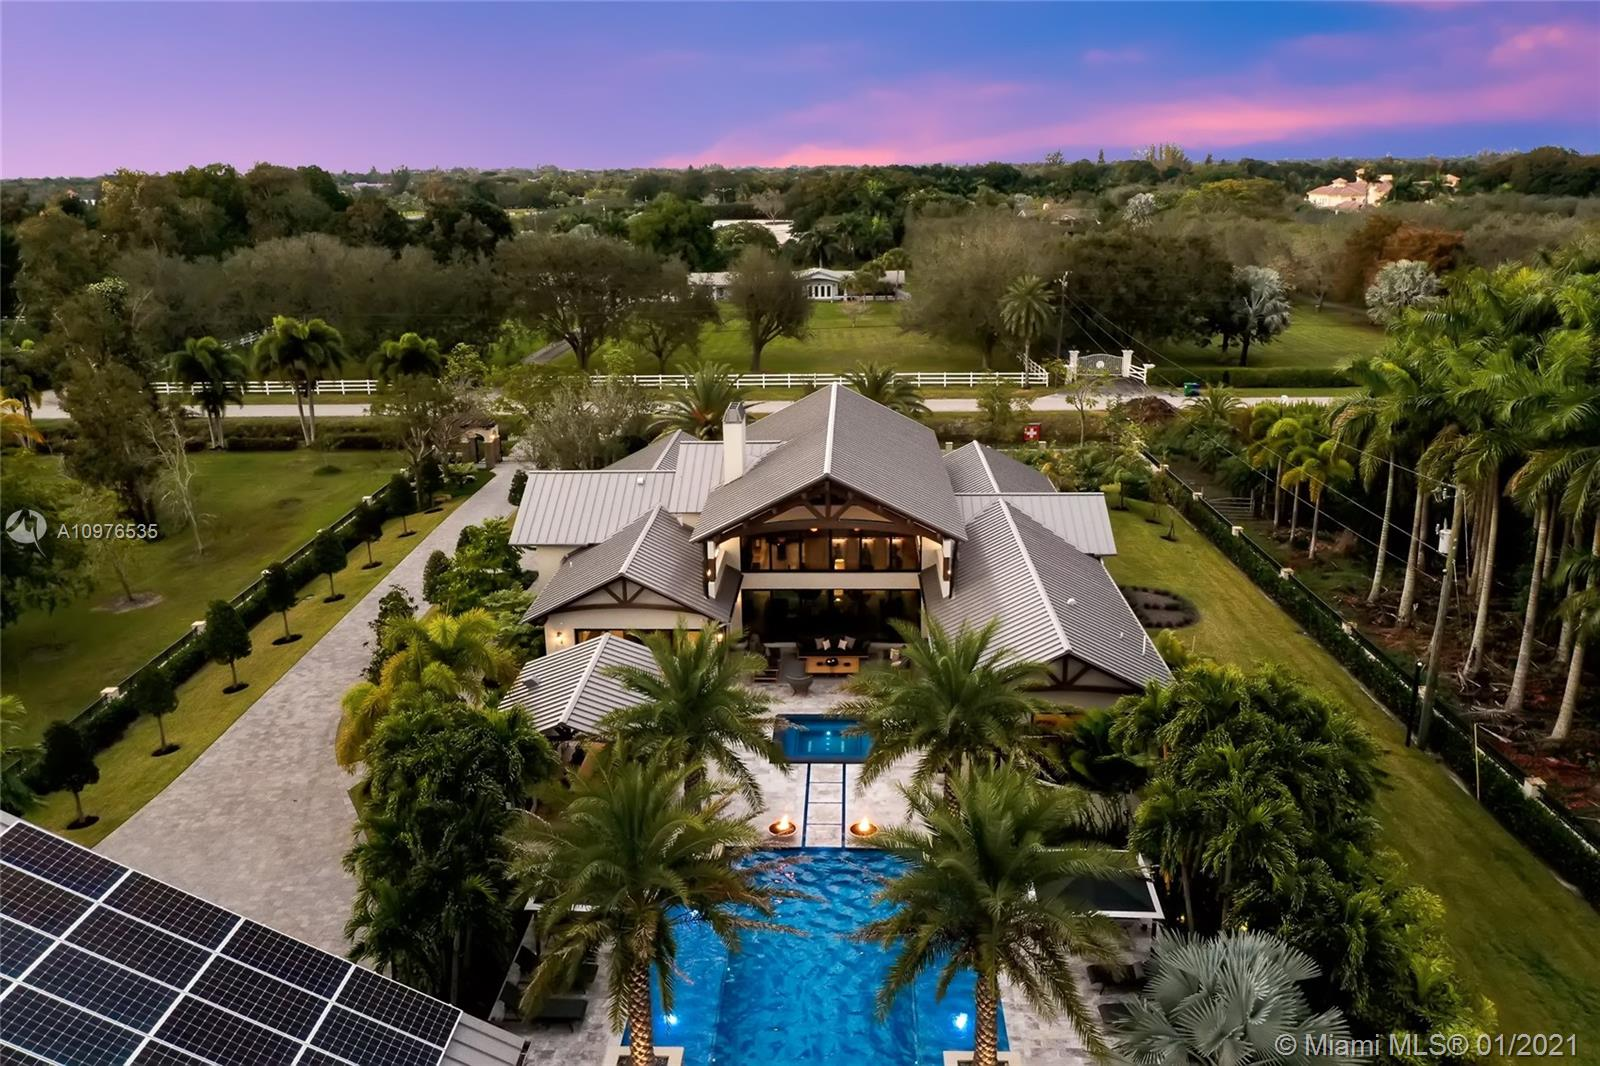 Twilight view of a portion of this masterpiece situated on 2.35 acres.